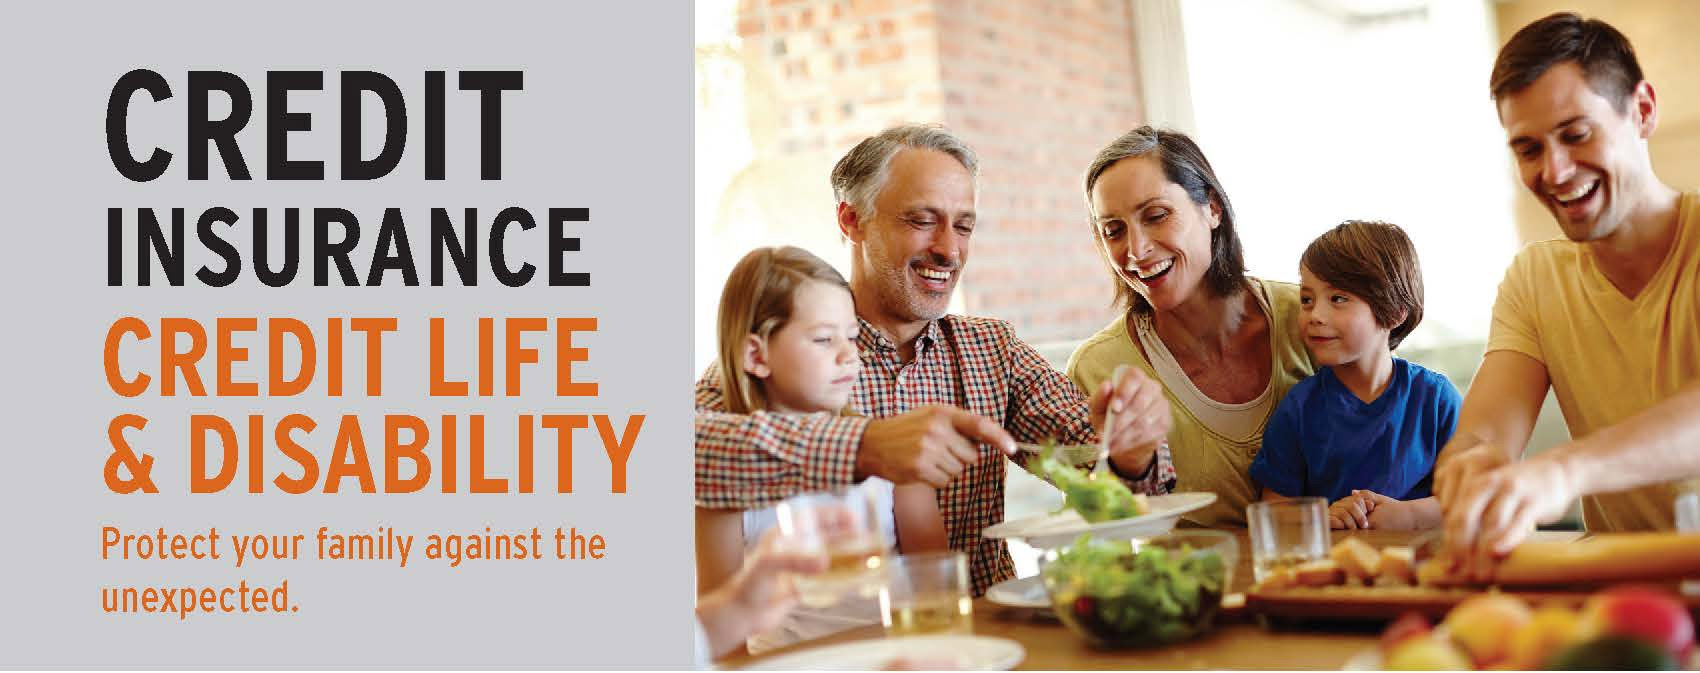 Credit Insurance. Credit Life & Disability. Protect you family against the unexpected